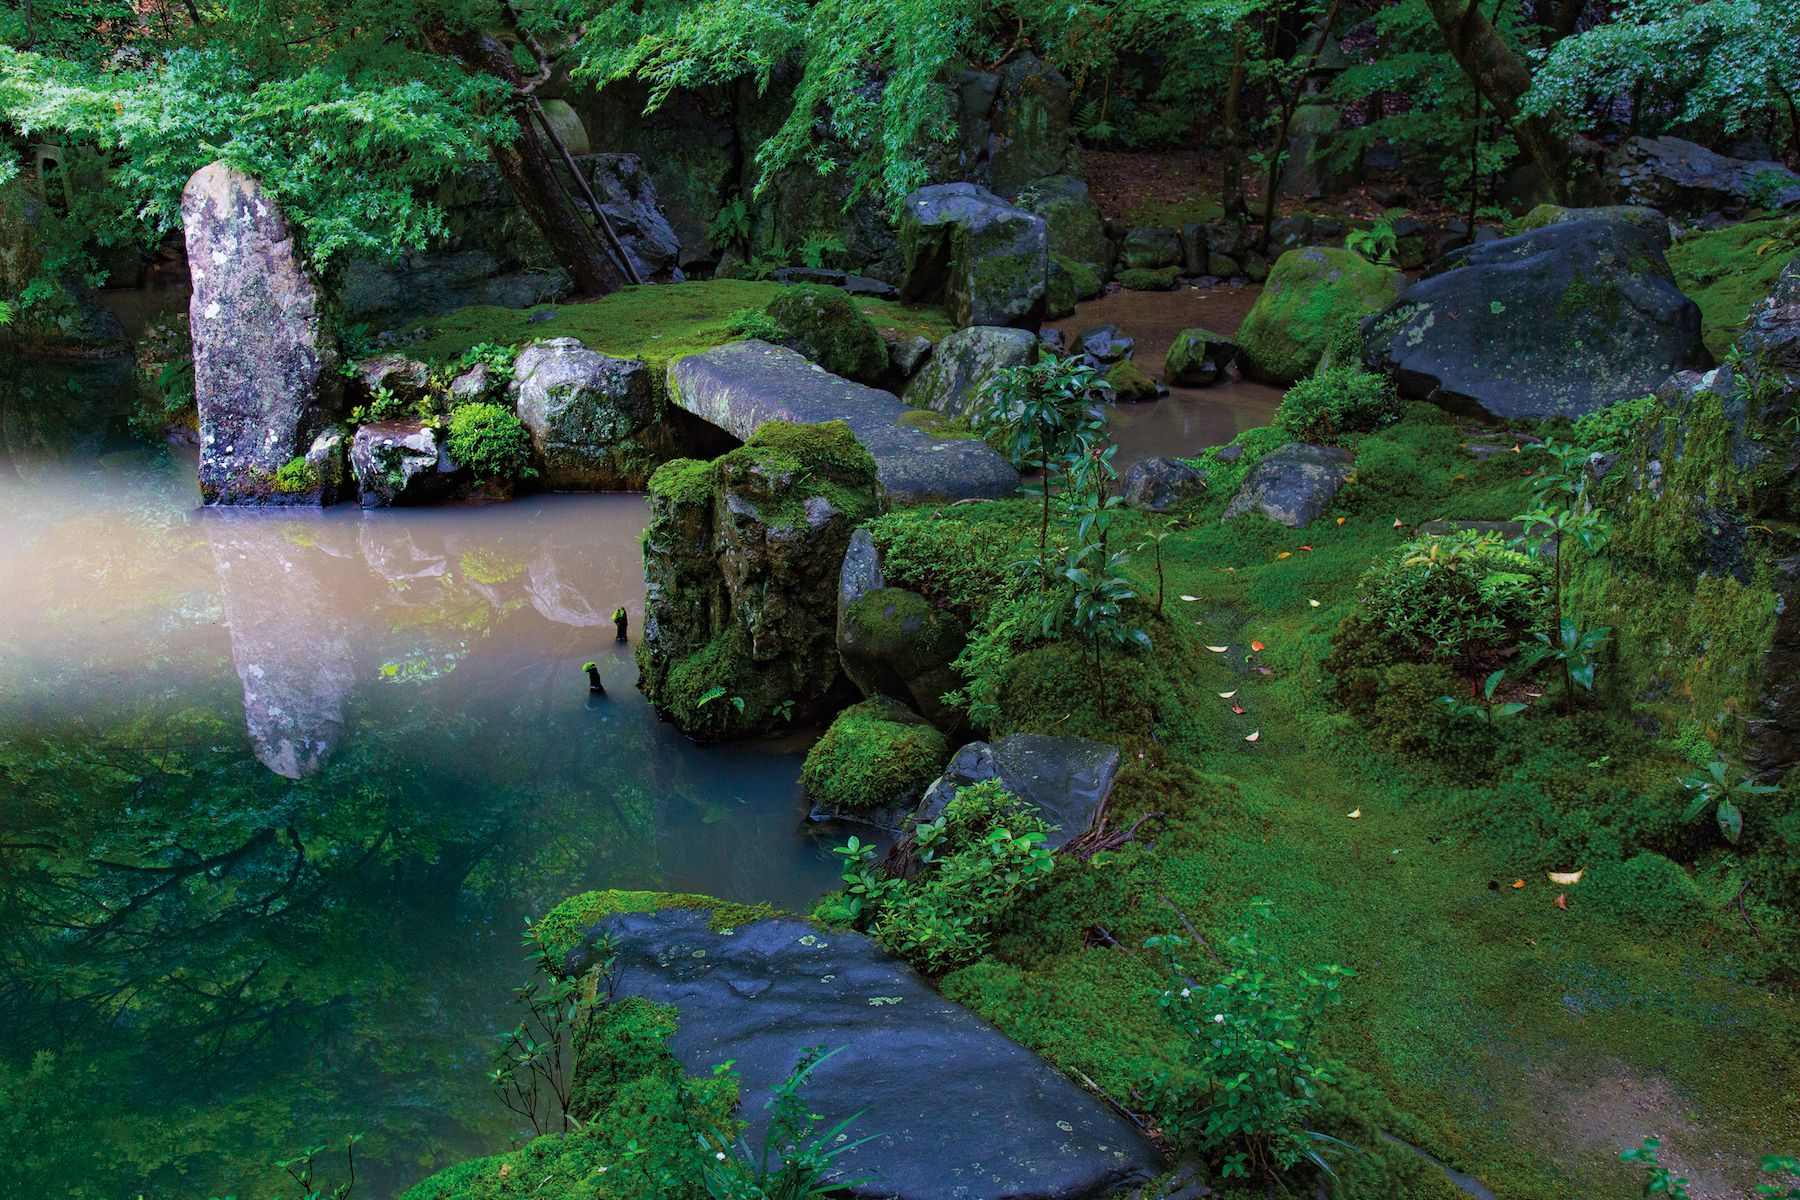 """Pond edge at Rengeji, Kyoto, Japan  """"A prominent stone and a bridge punctuate a shoreline made of smaller stones."""" —from """"Japanese Garden Notes""""   Pre-order to get a custom-printed 8 x 12"""" photograph from Japanese Garden Notes. https://stonebridgestore.squarespace.com/shop/japanese-garden-notes"""